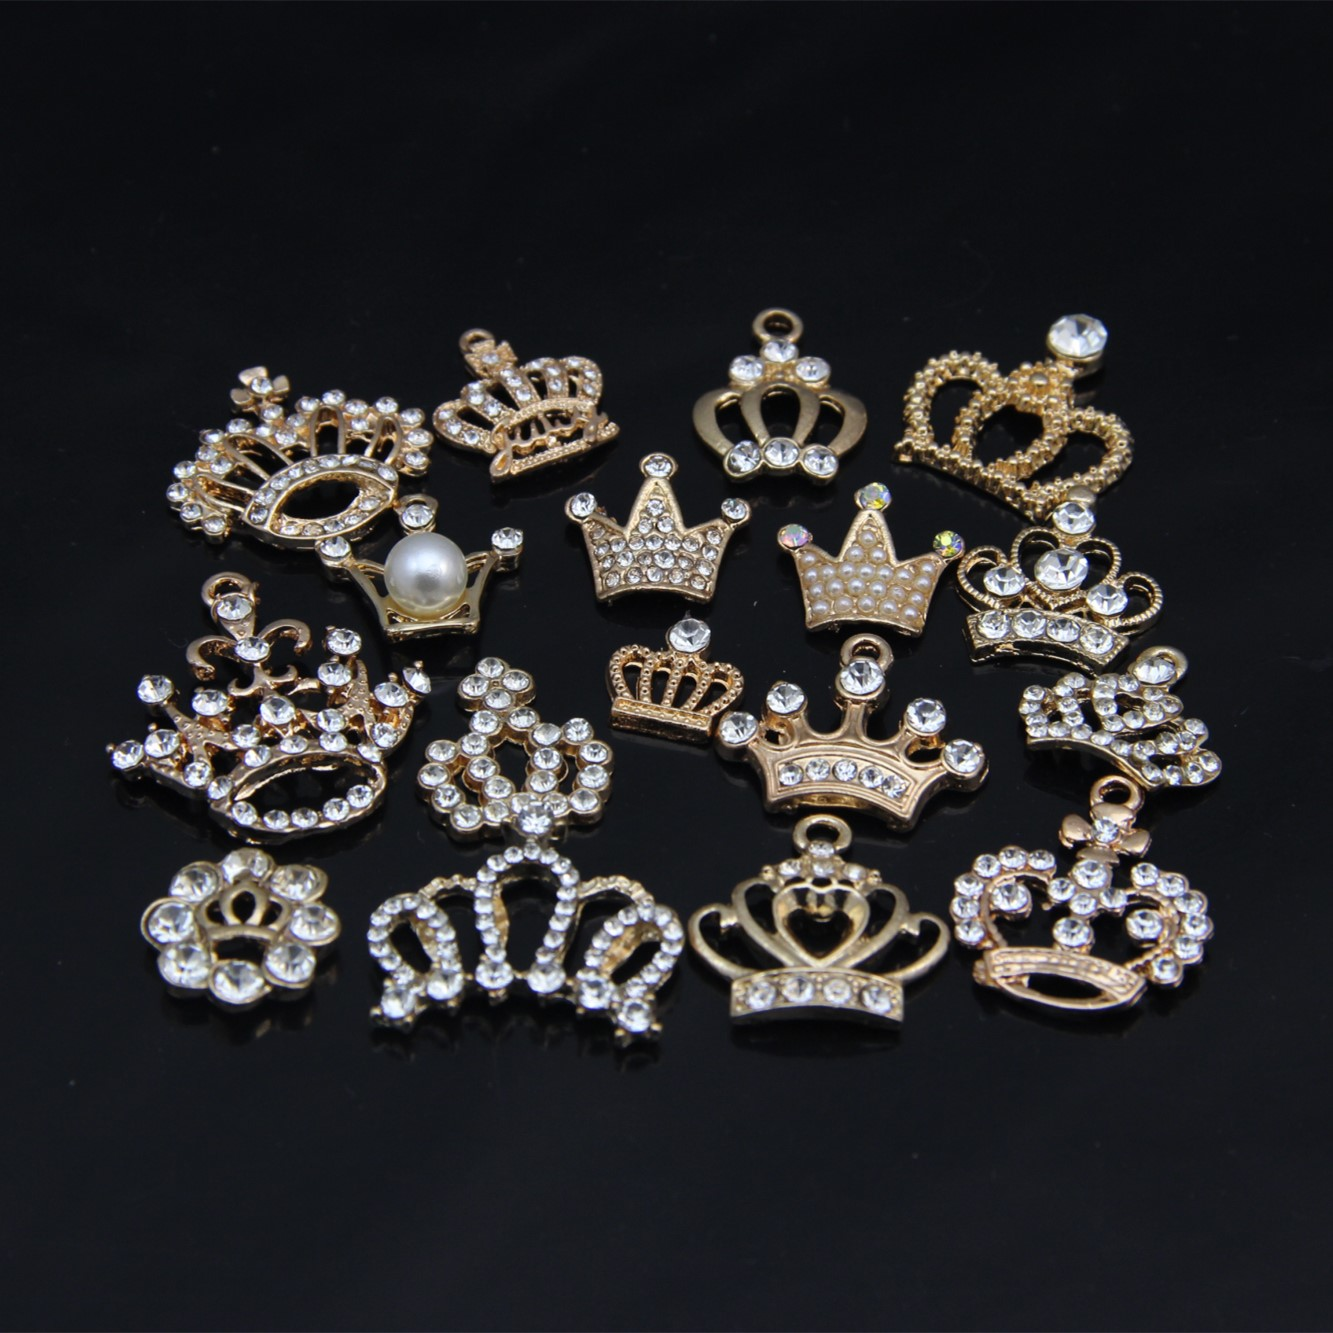 10pcs Crown Rhinestone metal pendant DIY Handmade necklace Jewelry makeing